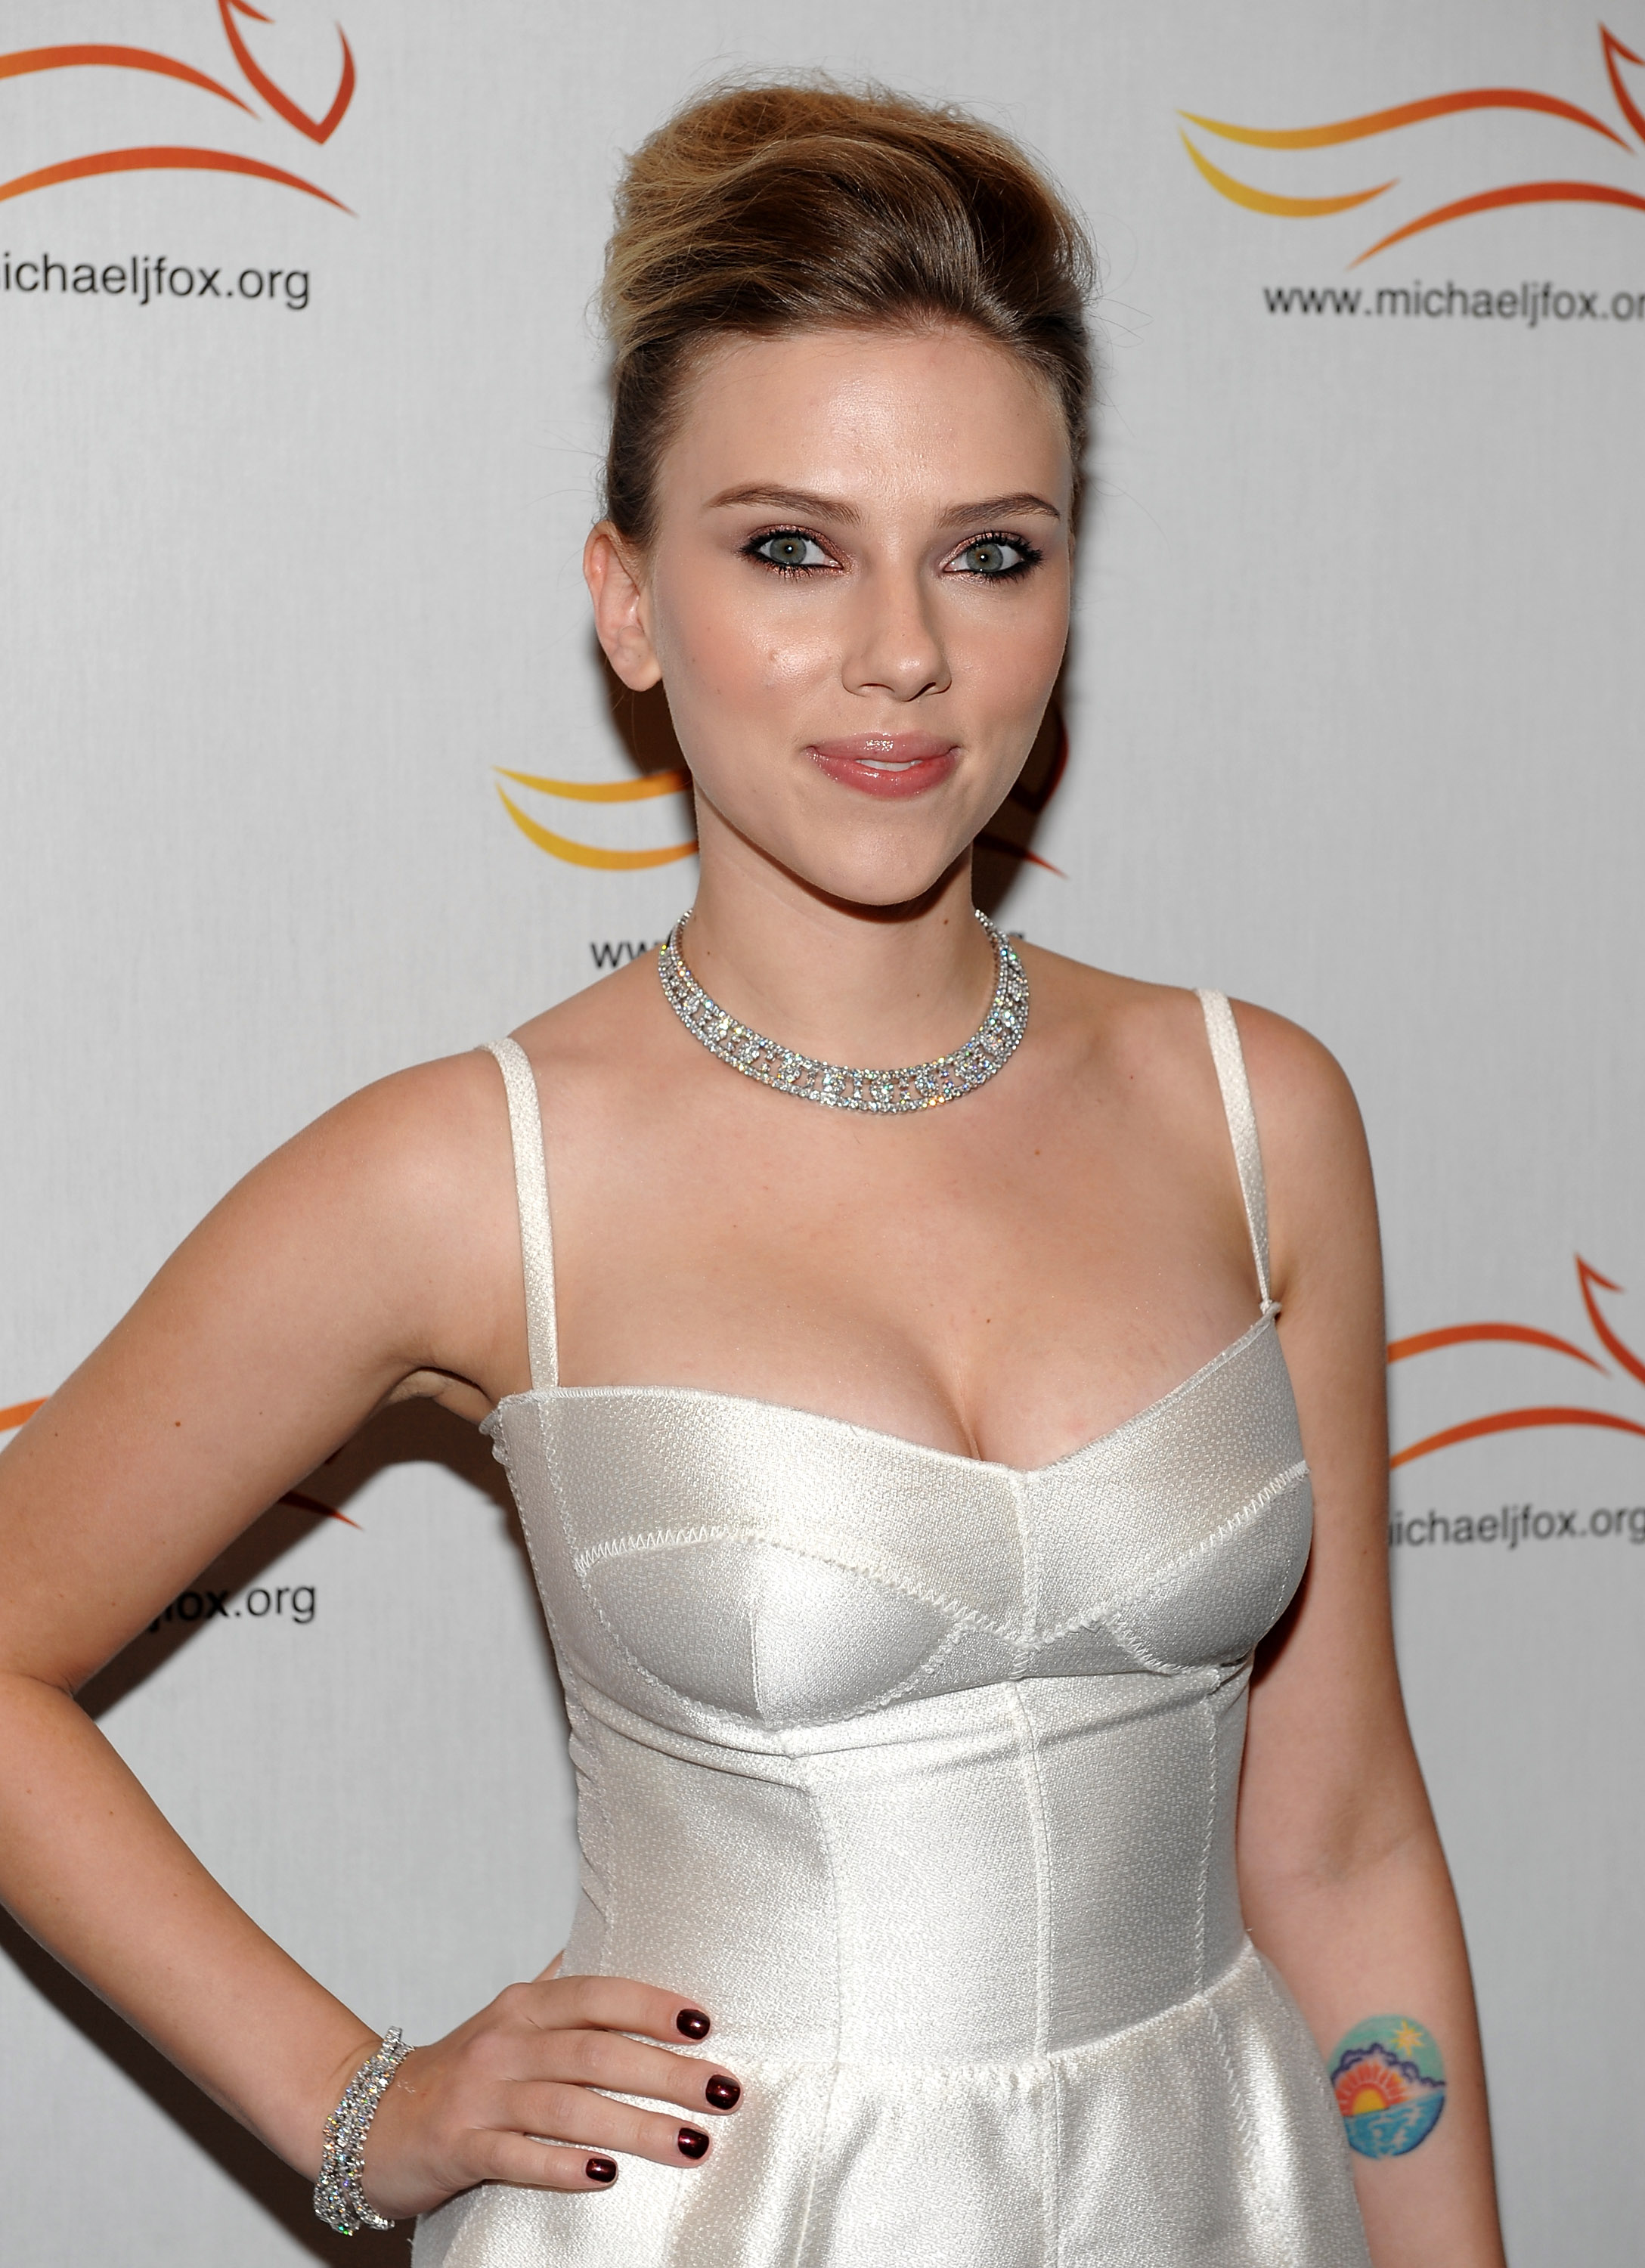 54562_Celebutopia-Scarlett_Johansson-A_Funny_Thing_Happened_on_the_Way_to_Cure_Parkinsons-13_122_851lo.JPG